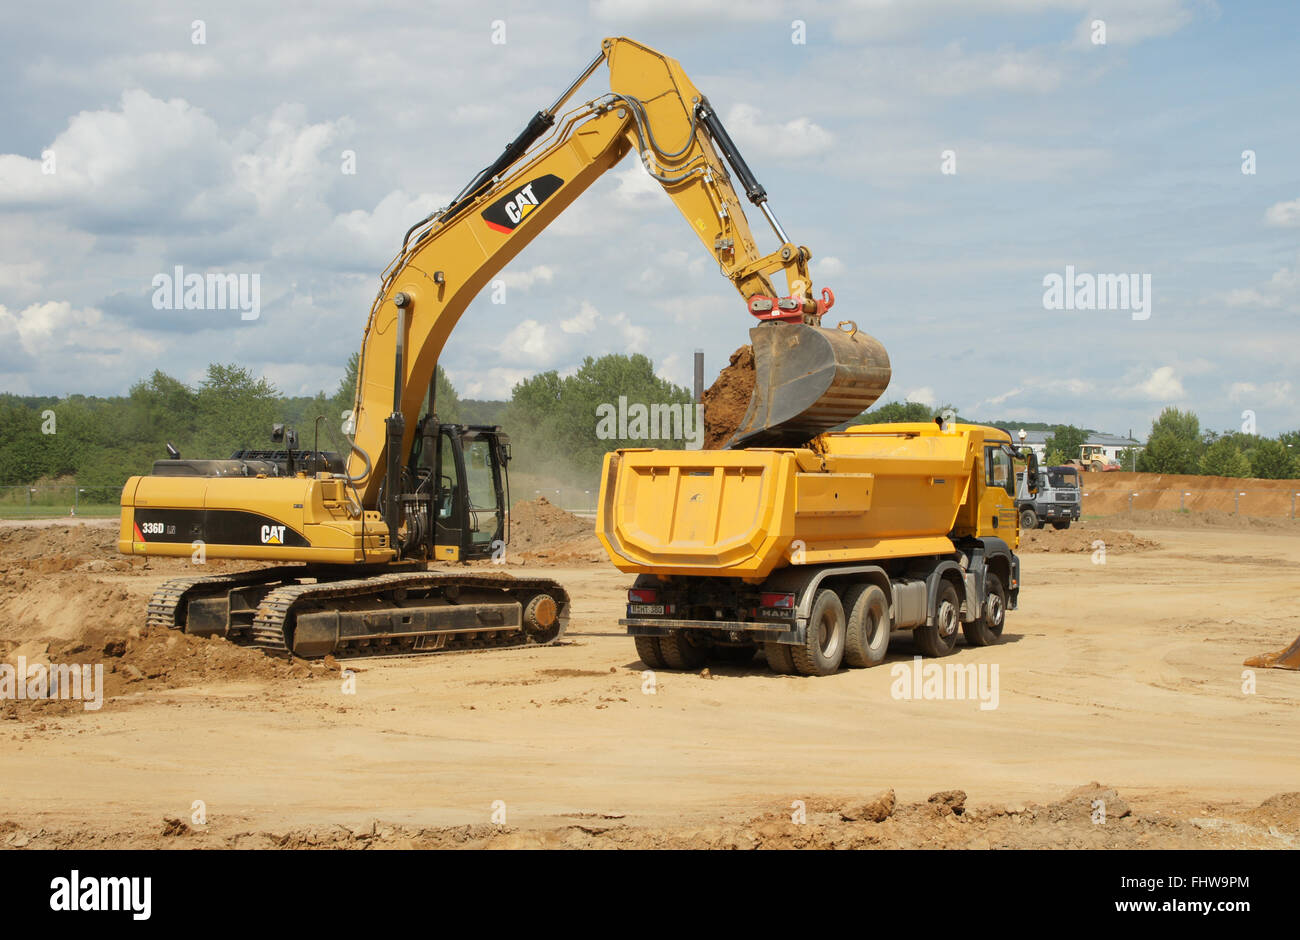 Building site with excavator and truck - Stock Image